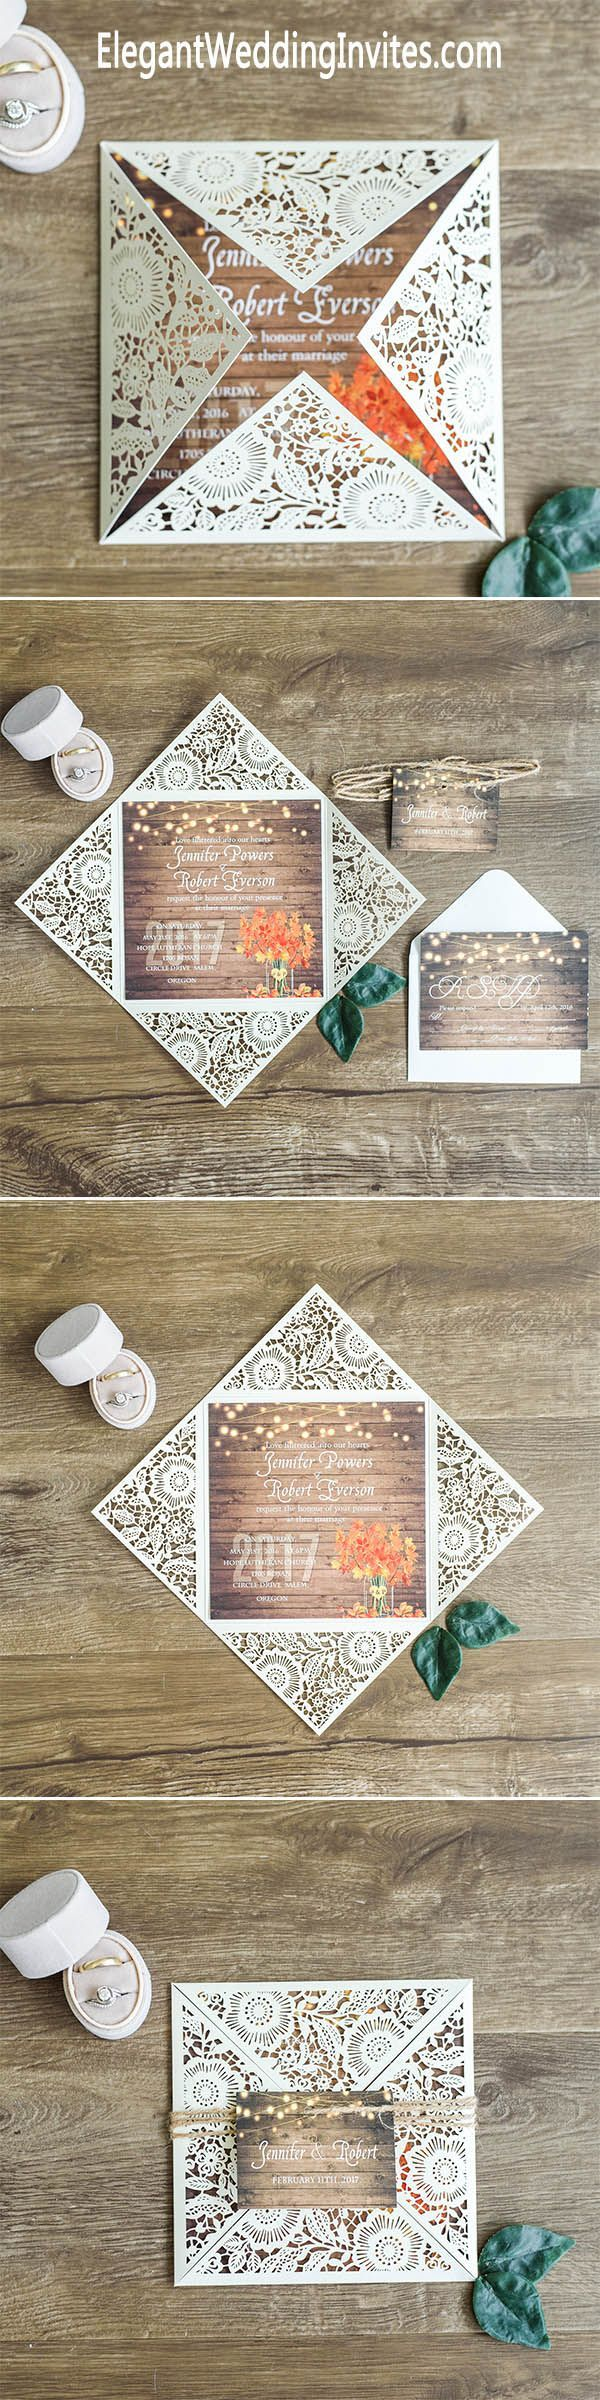 wedding invitations for less than dollar%0A      for     sets of invitations  Rustic Stringlights Maple Leaf Laser Cut Wedding  Invitations With